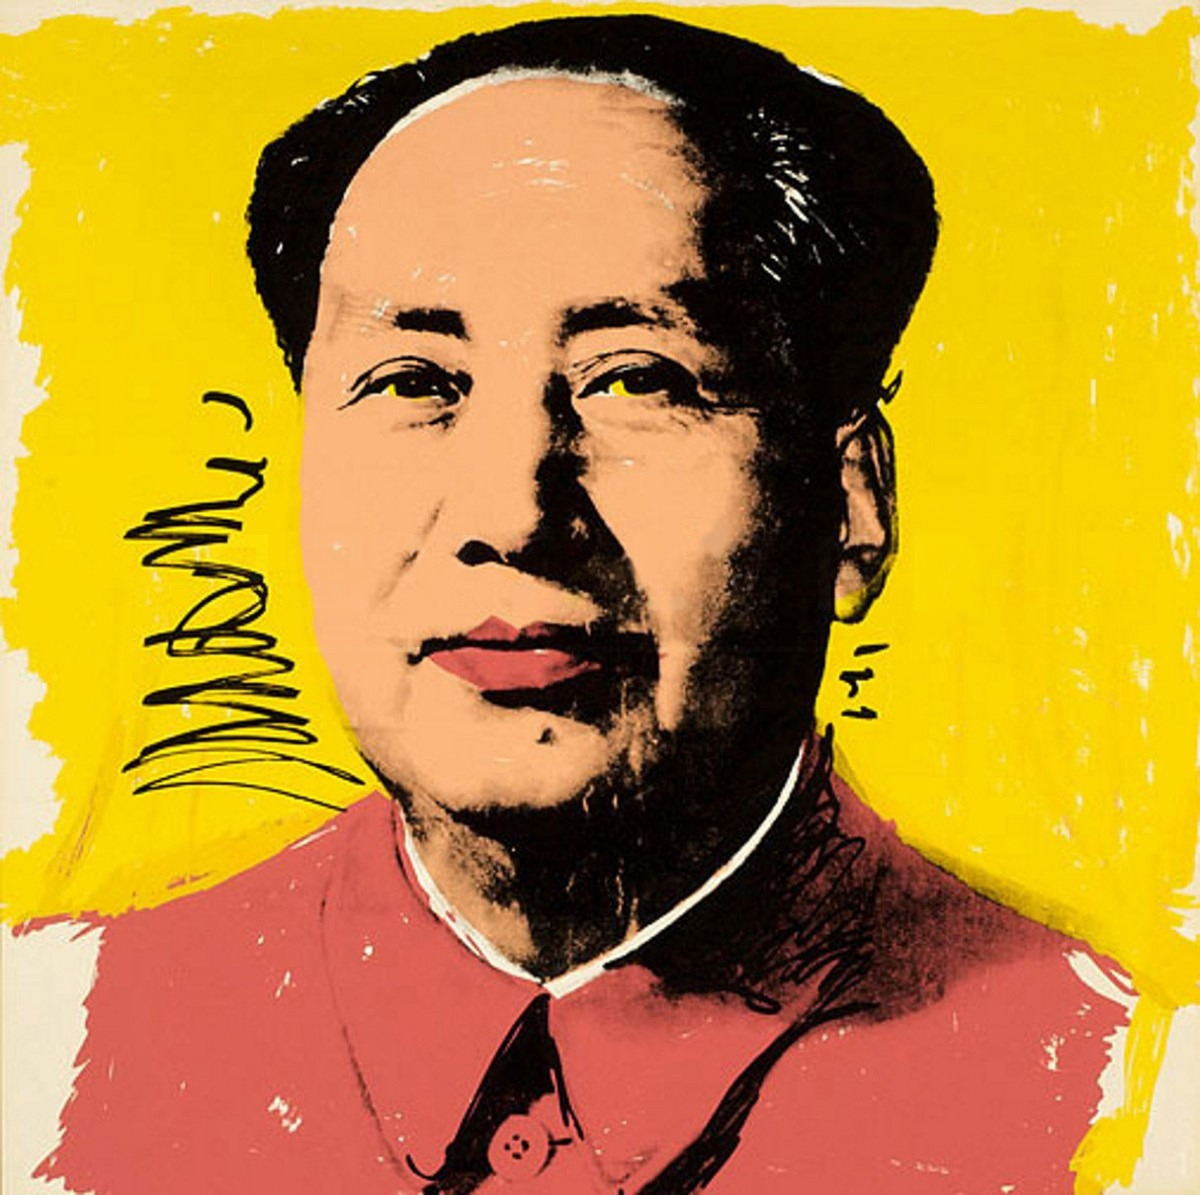 Andy Warhol Mao 97